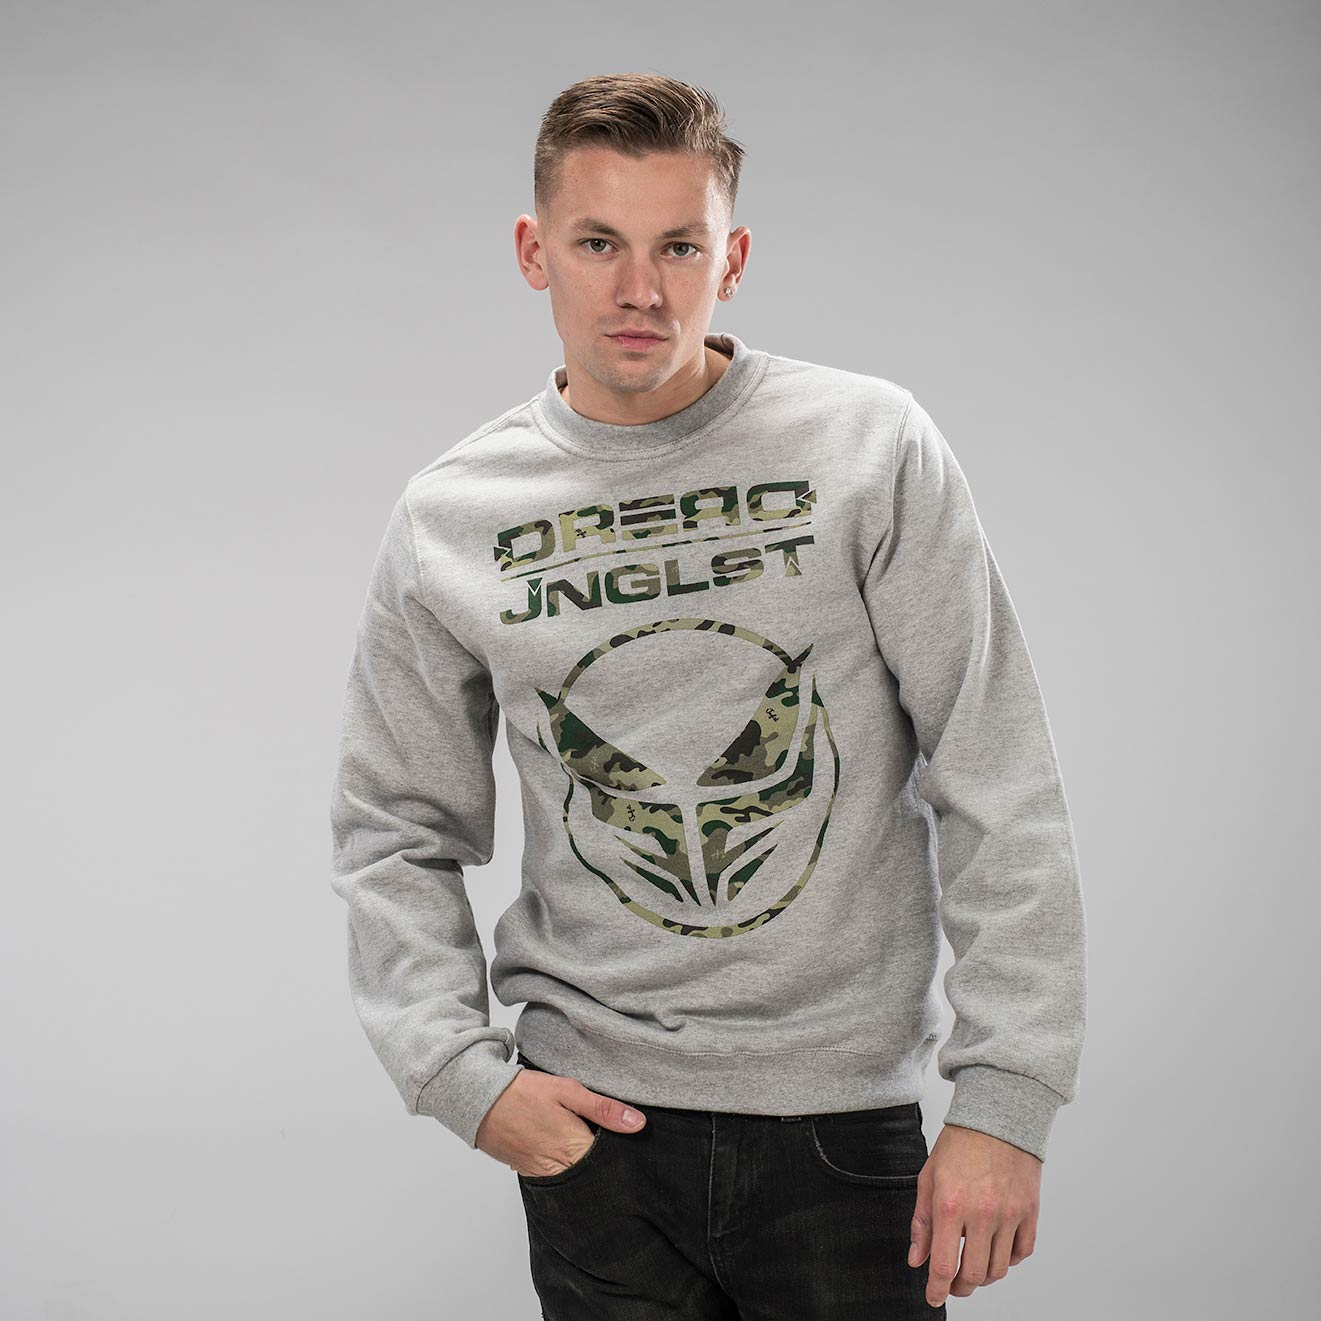 Dread Recordings Camo Sweatshirt by Jnglst Clothing